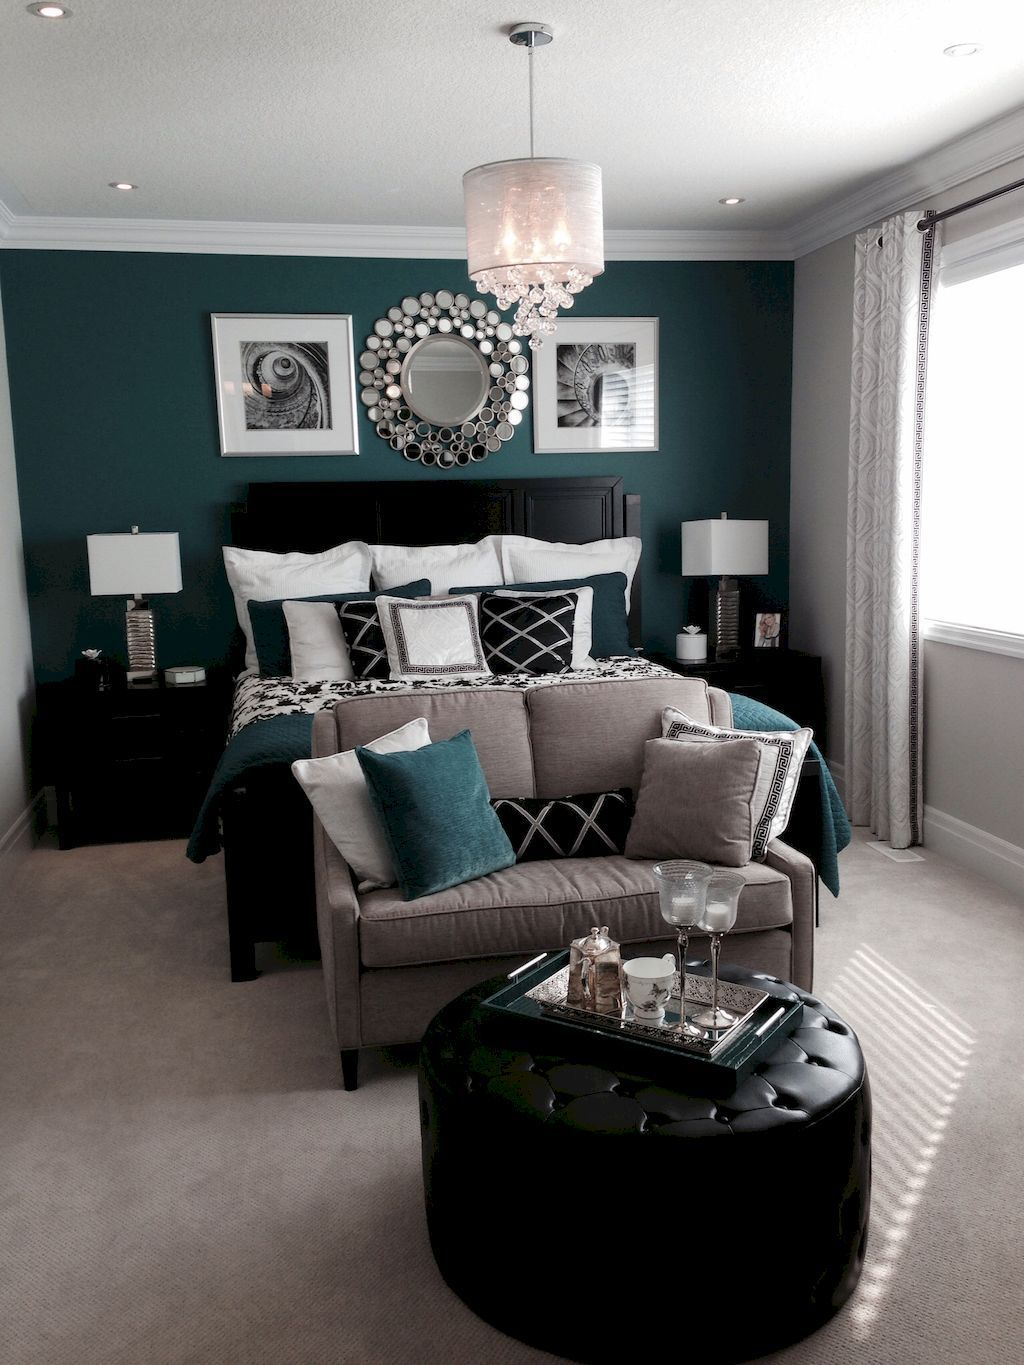 Accent wall paint ideas bedroom   Various Accent Wall Ideas Gallery for Your Sweet Home  DIY